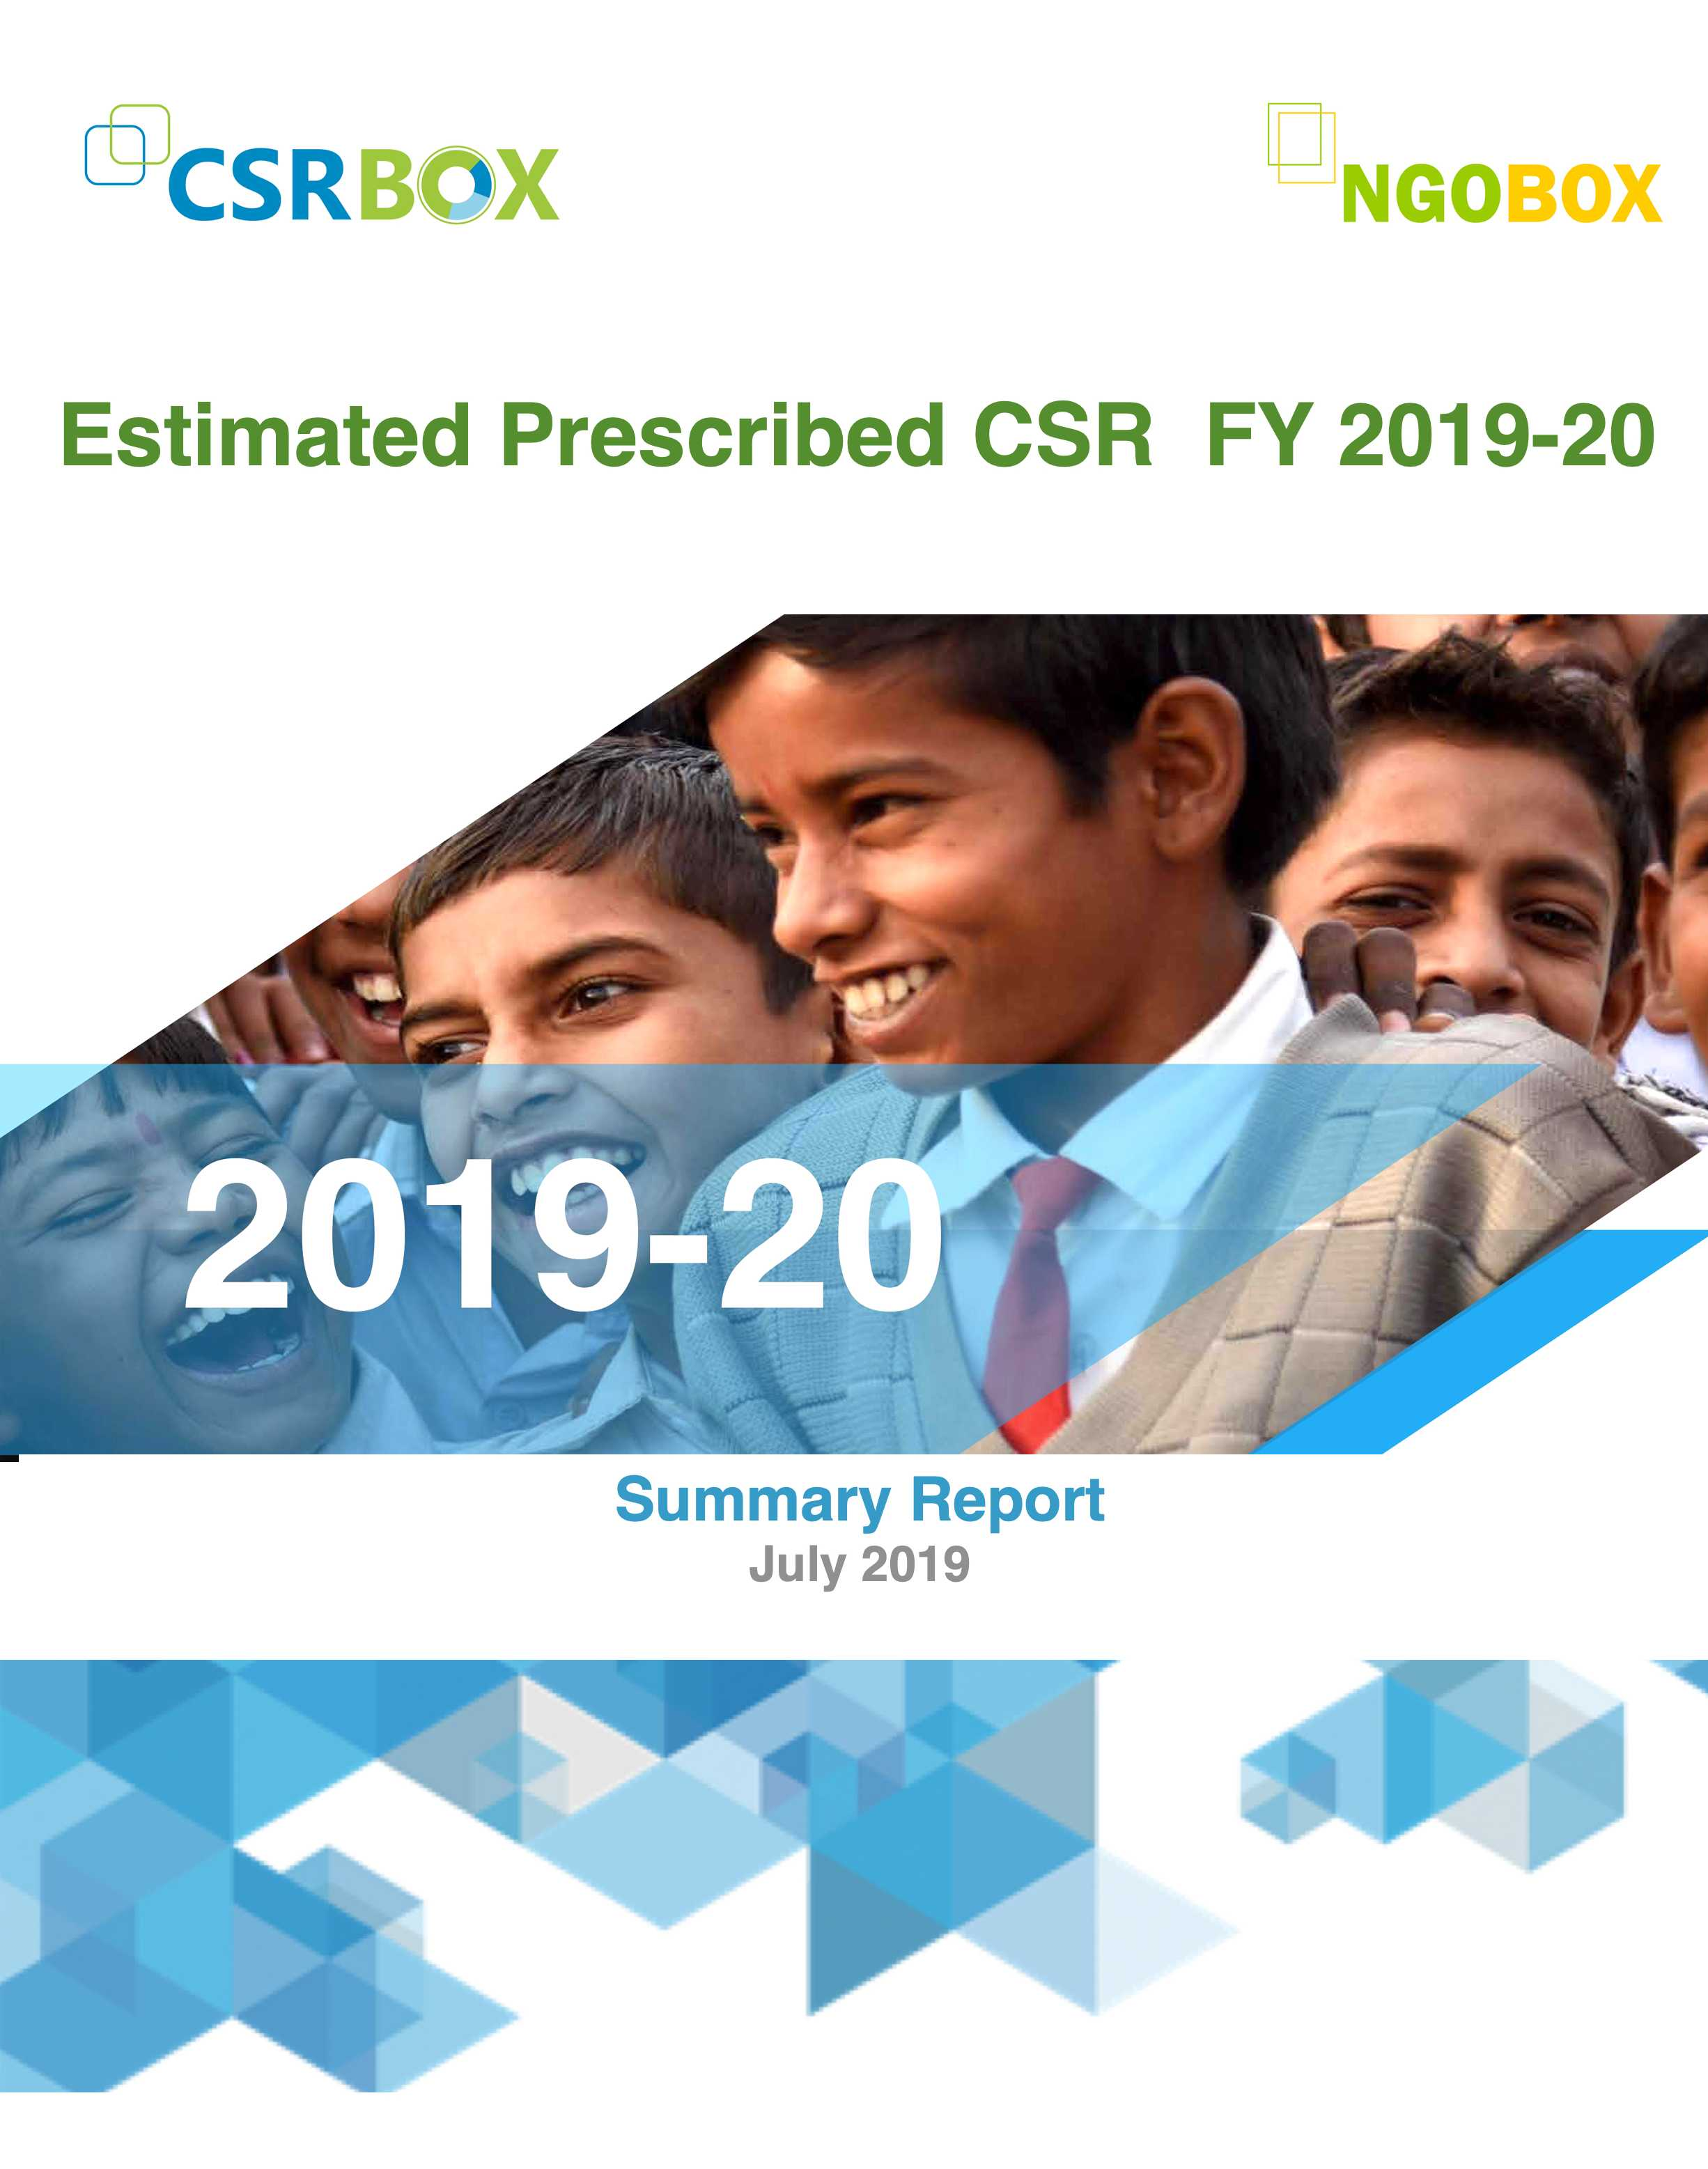 Estimated Prescribeid CSR of big 500 companies FY 2019-20